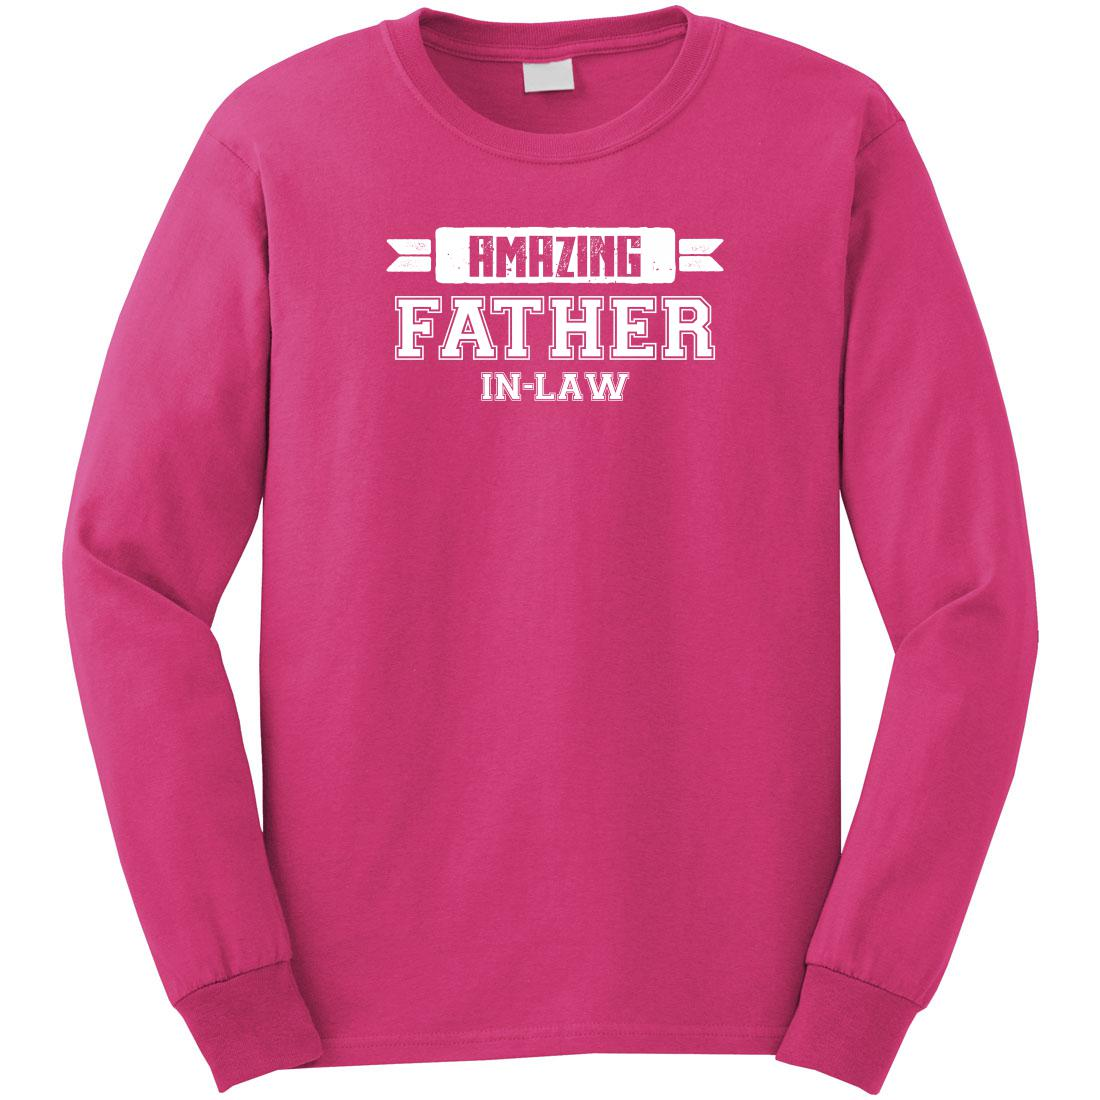 07317fc87 Uncensored Shirts - Amazing Father In Law Long Sleeve Shirt - ID: 1065 -  Walmart.com